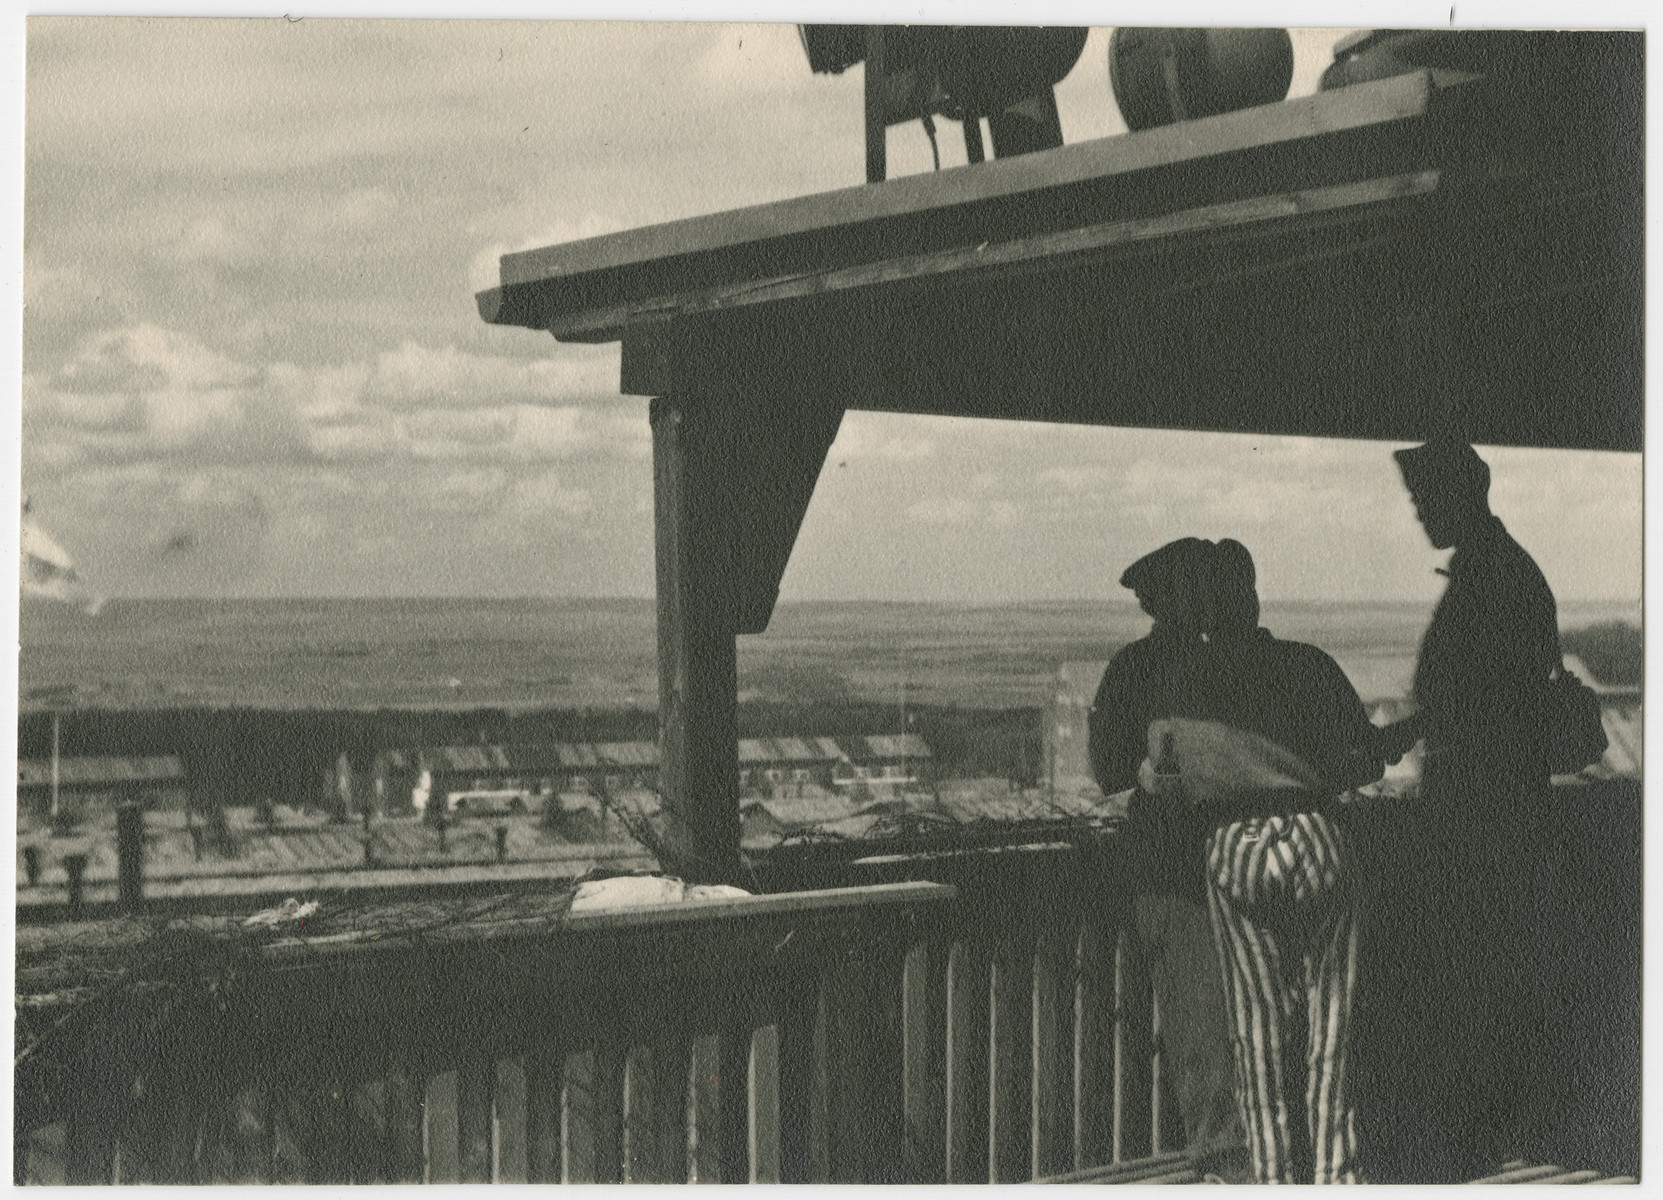 Survivors standing on an observation deck look down on the Buchenwald concentration camp.